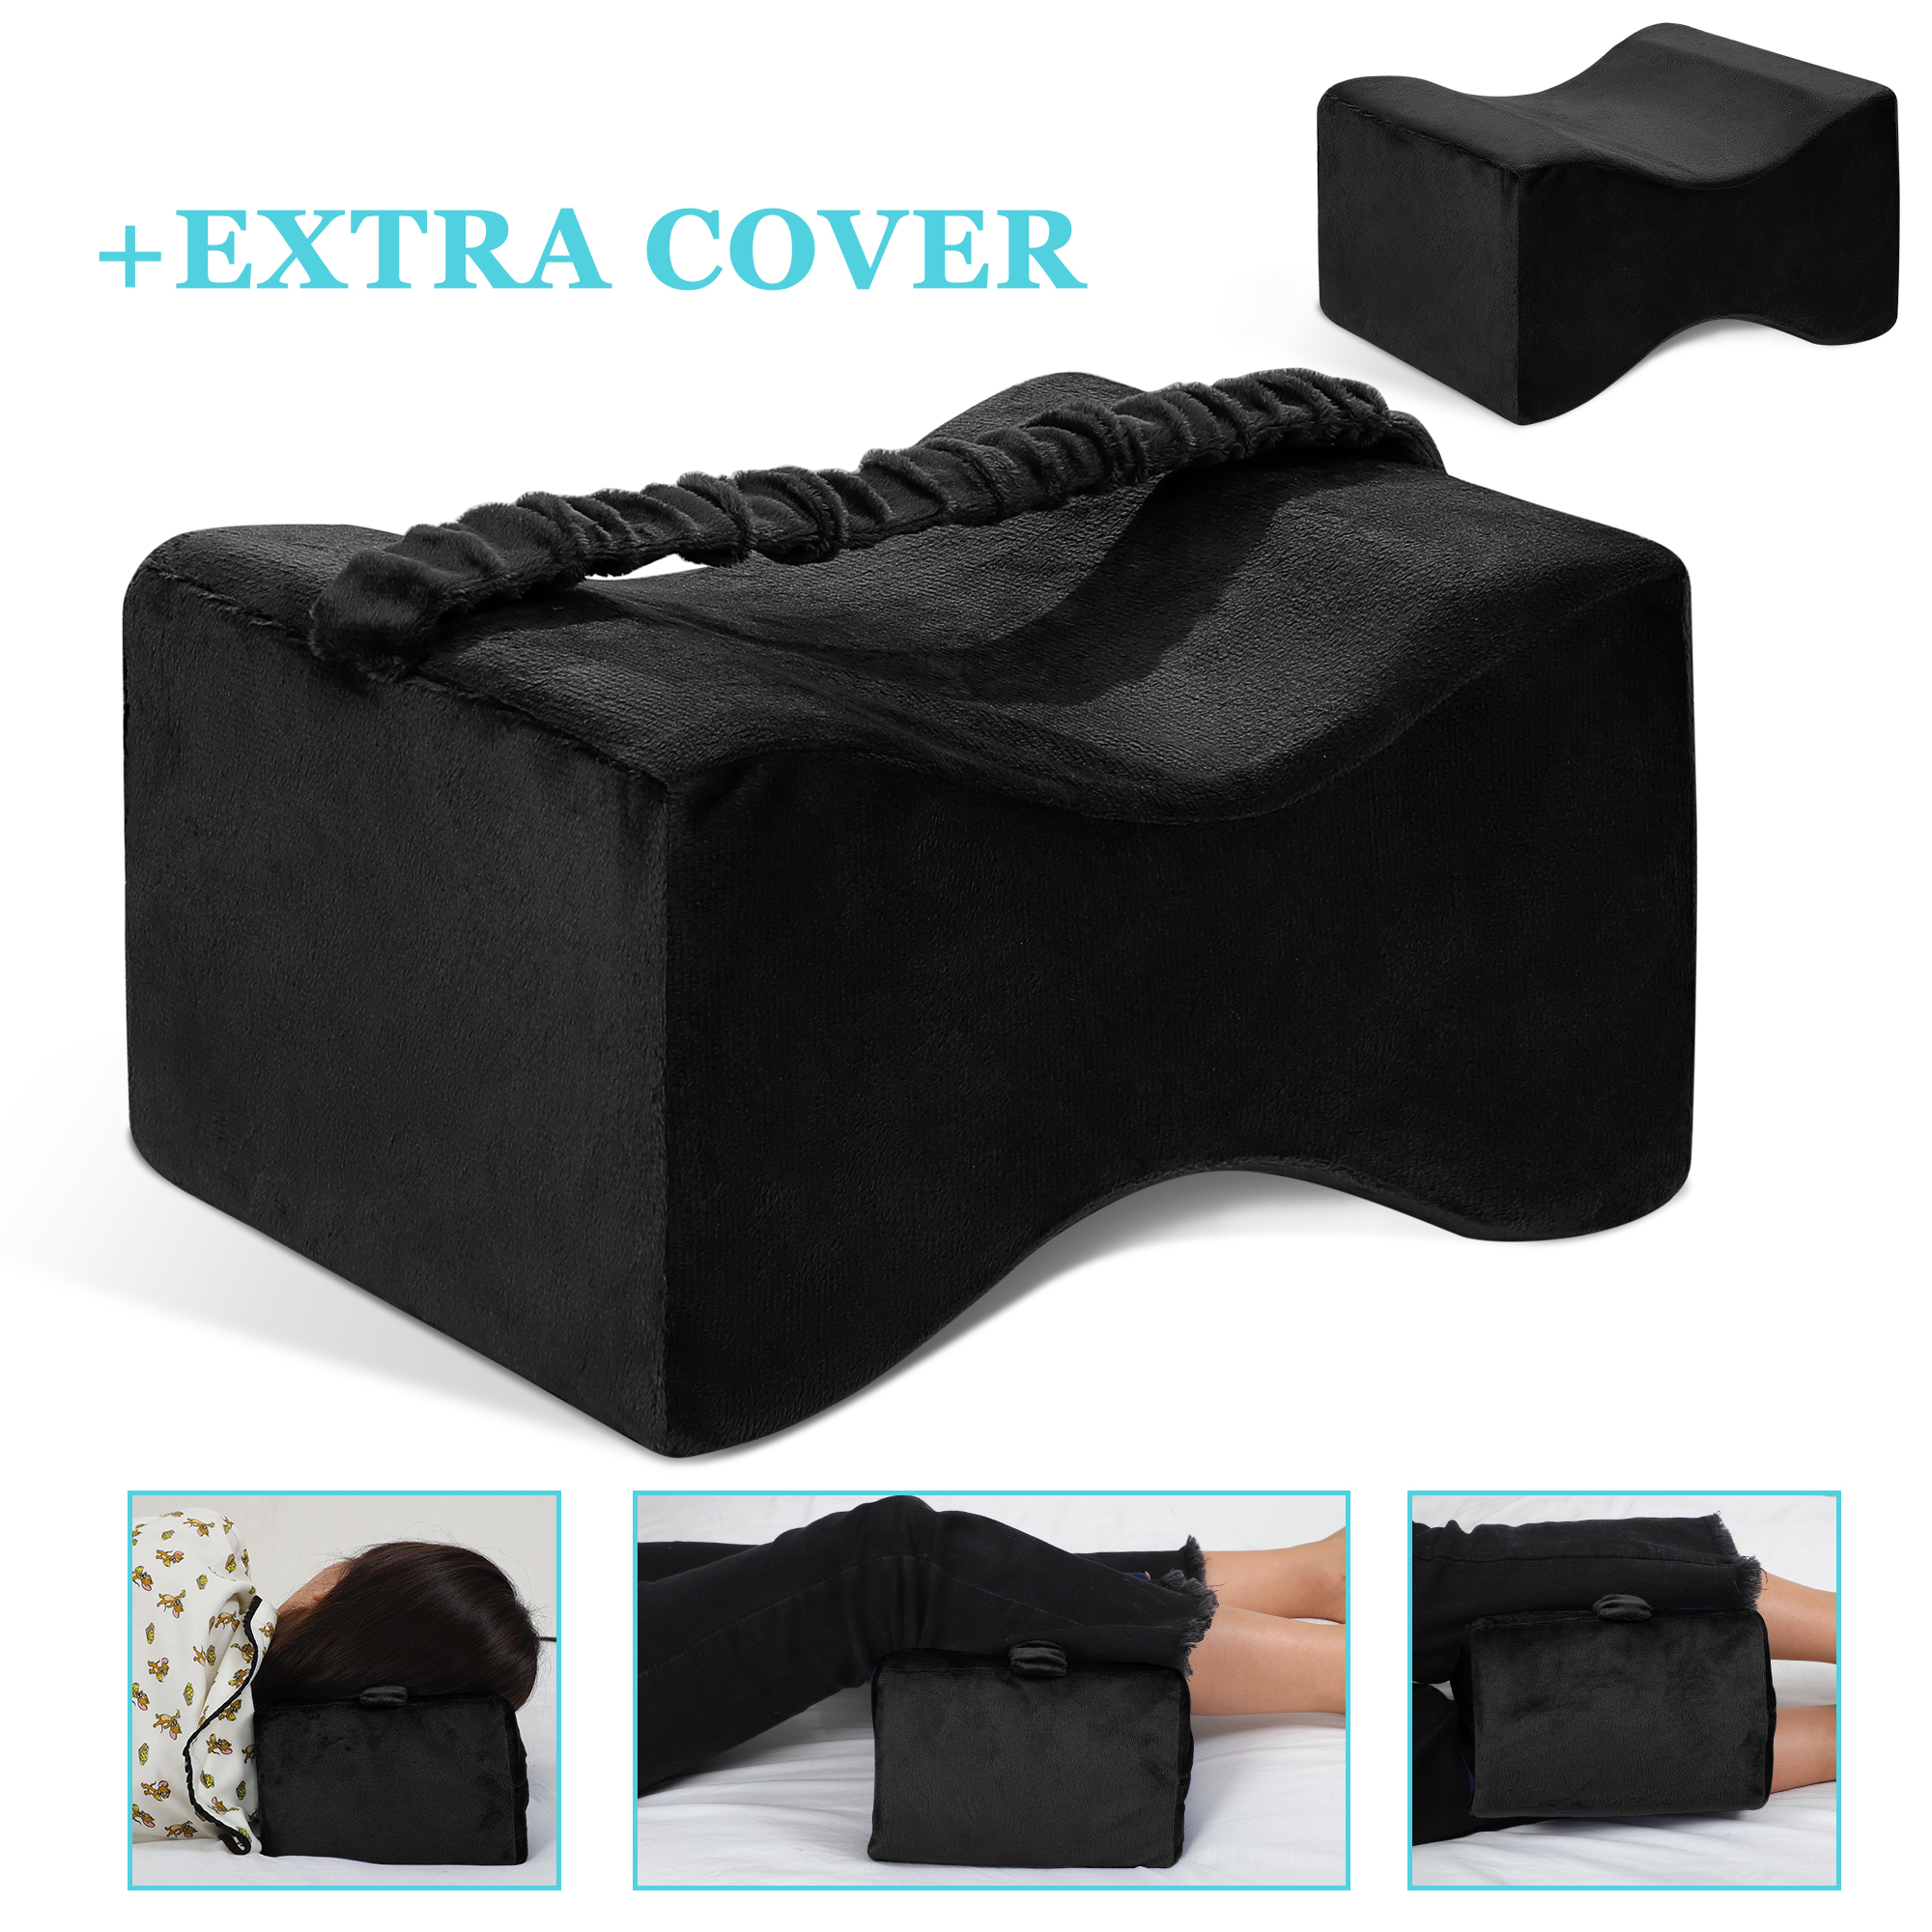 knee pillow for side sleeping memory foam leg pillow for knee pain back pain with 2 washable covers black